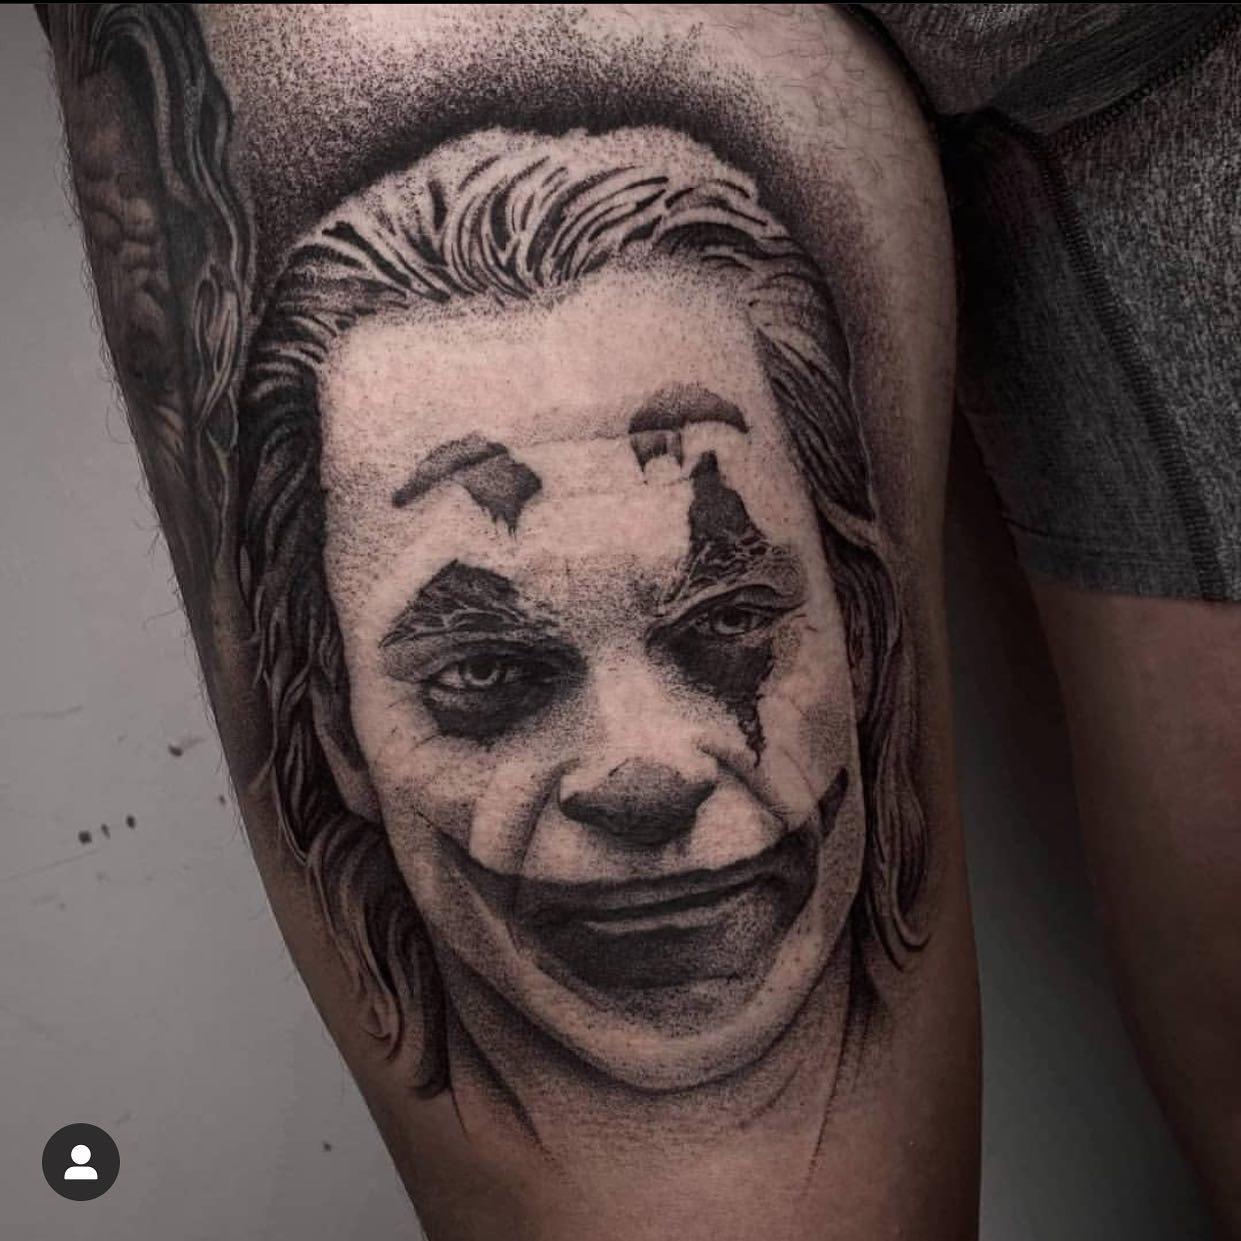 More @jokermovie requests for @vik_b_tattooer please ———— ———— ️01315582974 artwork@studioxiii.tattoo studioxiii tattoos tattooed tattooflash blackworkers bandg realism realistictattoo skull skinartmag skulltattoo lion liontattoo tattooartist edinburghtattooartist edinburghtattoo girltattoo blackclaw uktta ttt eztattoocartridges ukbta skindeep txtooing tattoomediaink thebesttattooartist tattoosnob tattooartistic